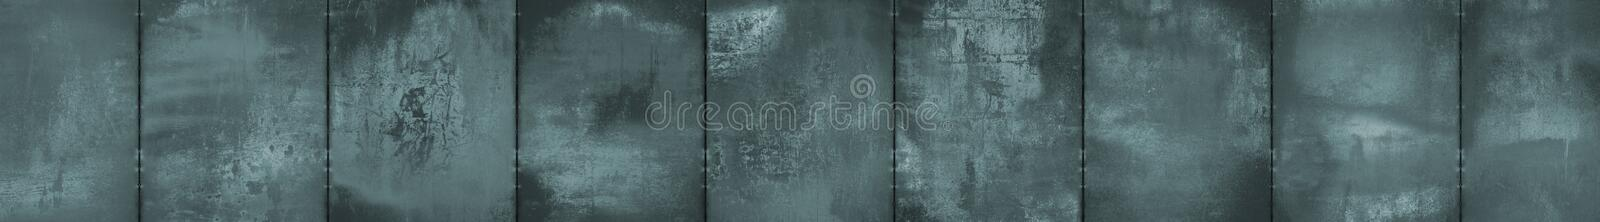 Monochrome Grungy Panoramic Metal Background (Letterbox Format). A monochrome grungy panoramic background made of metal sheets royalty free stock photography